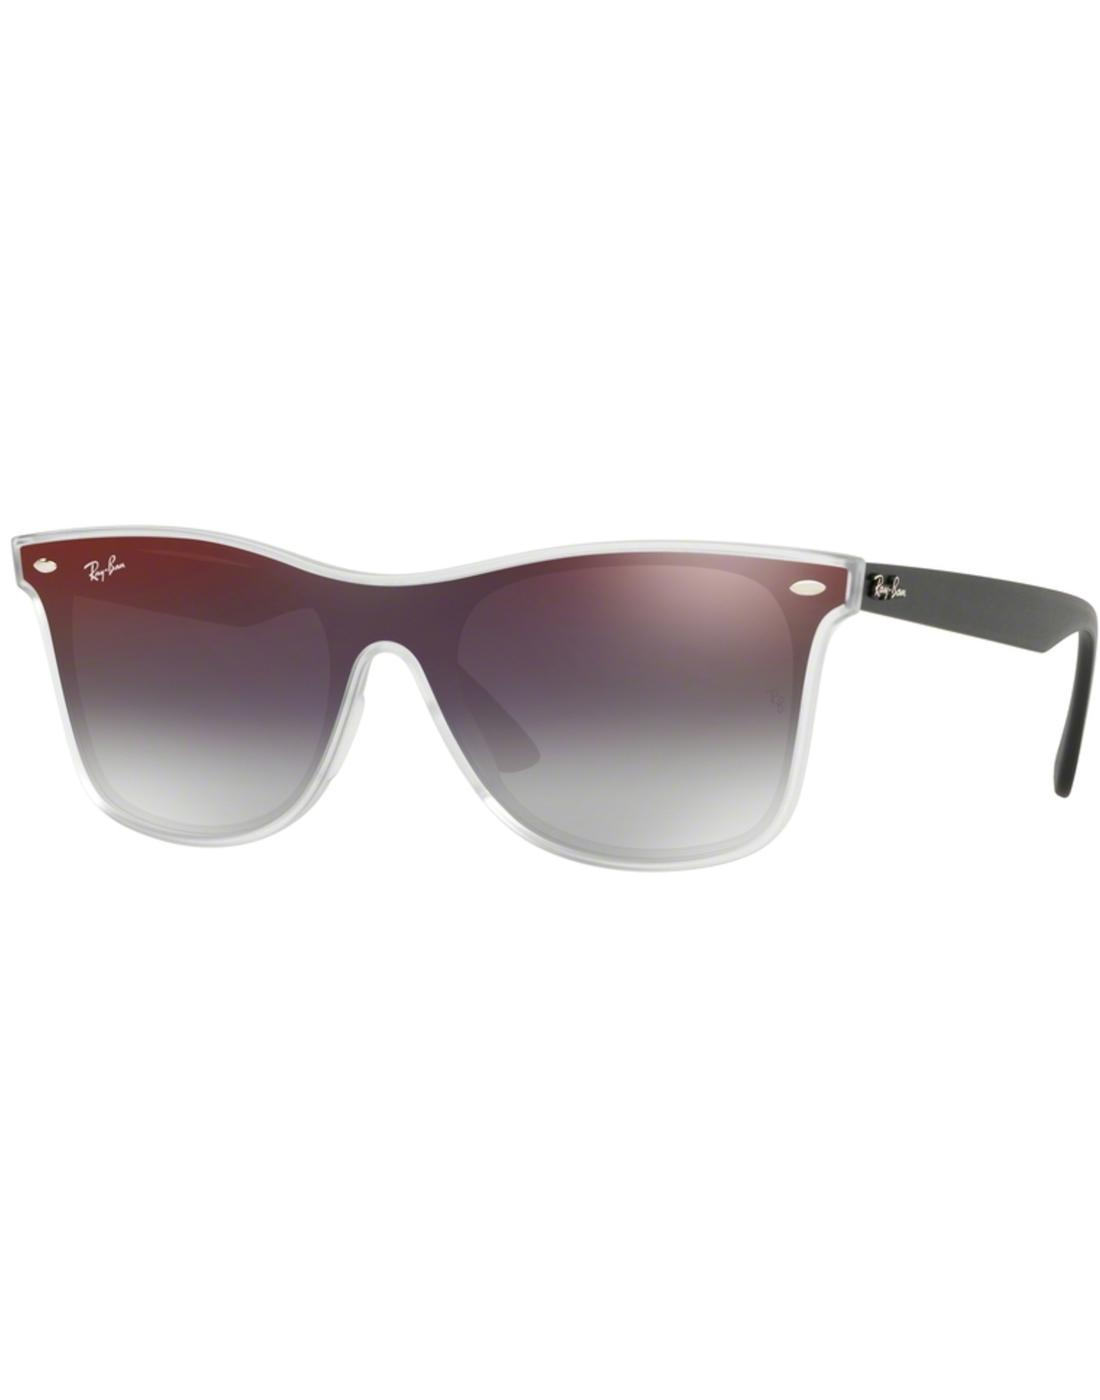 Blaze Wayfarer RAY-BAN Mirror Lens Sunglasses Red